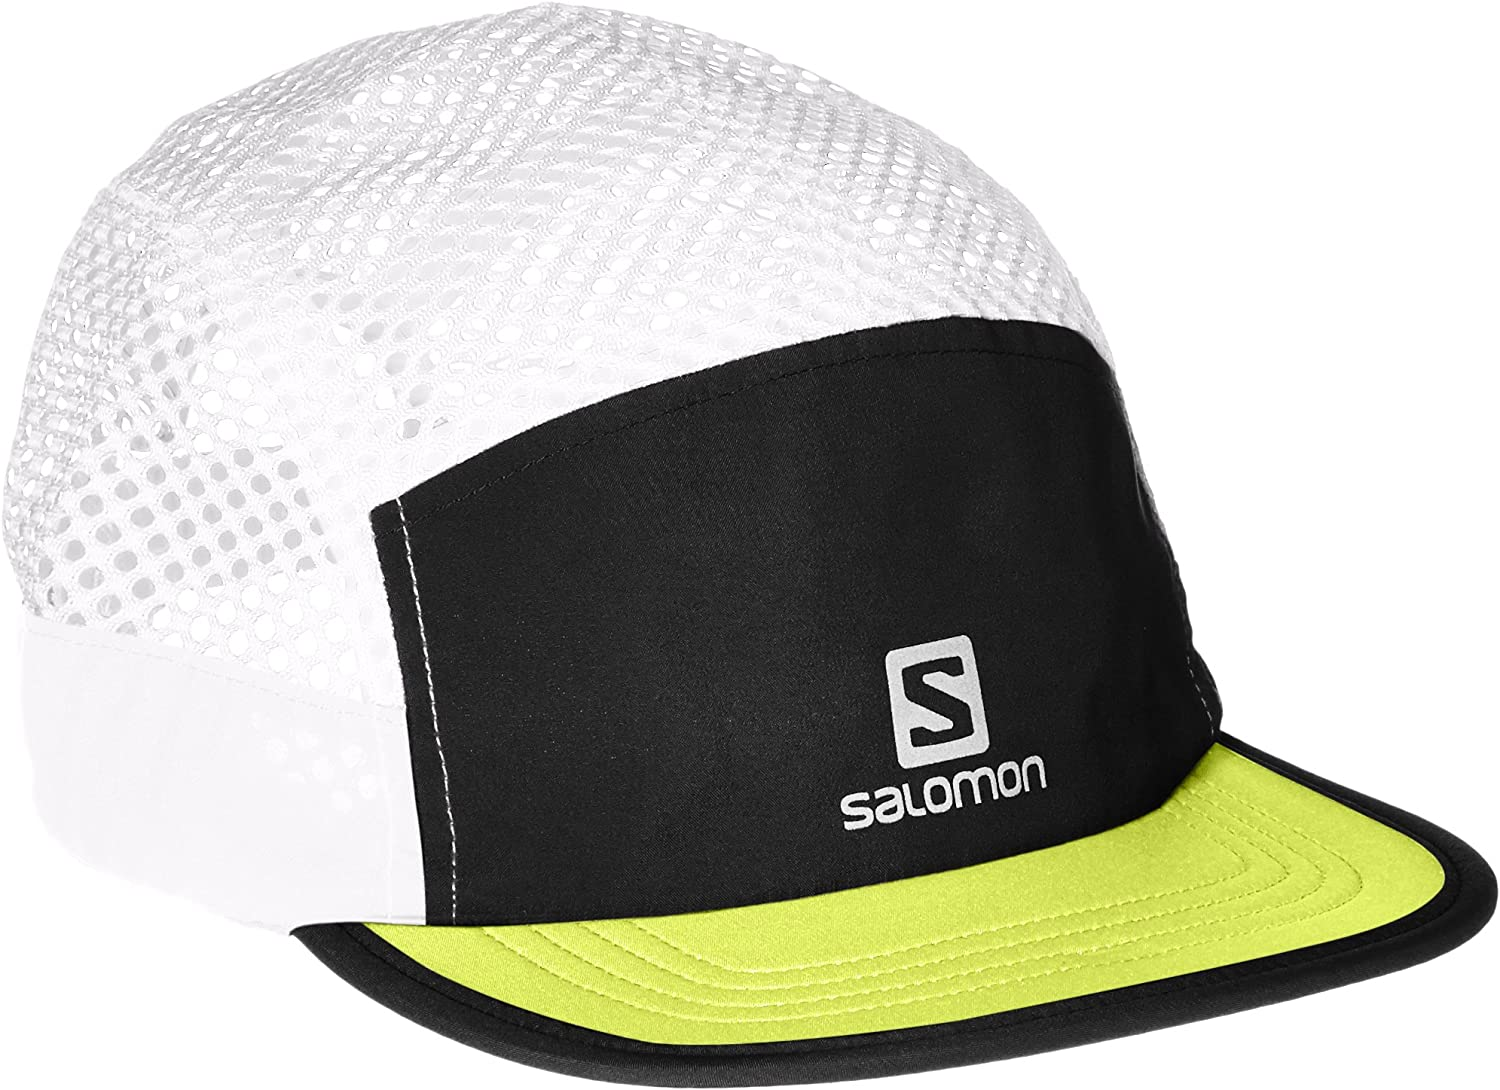 SALOMON Air Logo Gorra, Hombre, Negro, Talla Única: Amazon.es ...